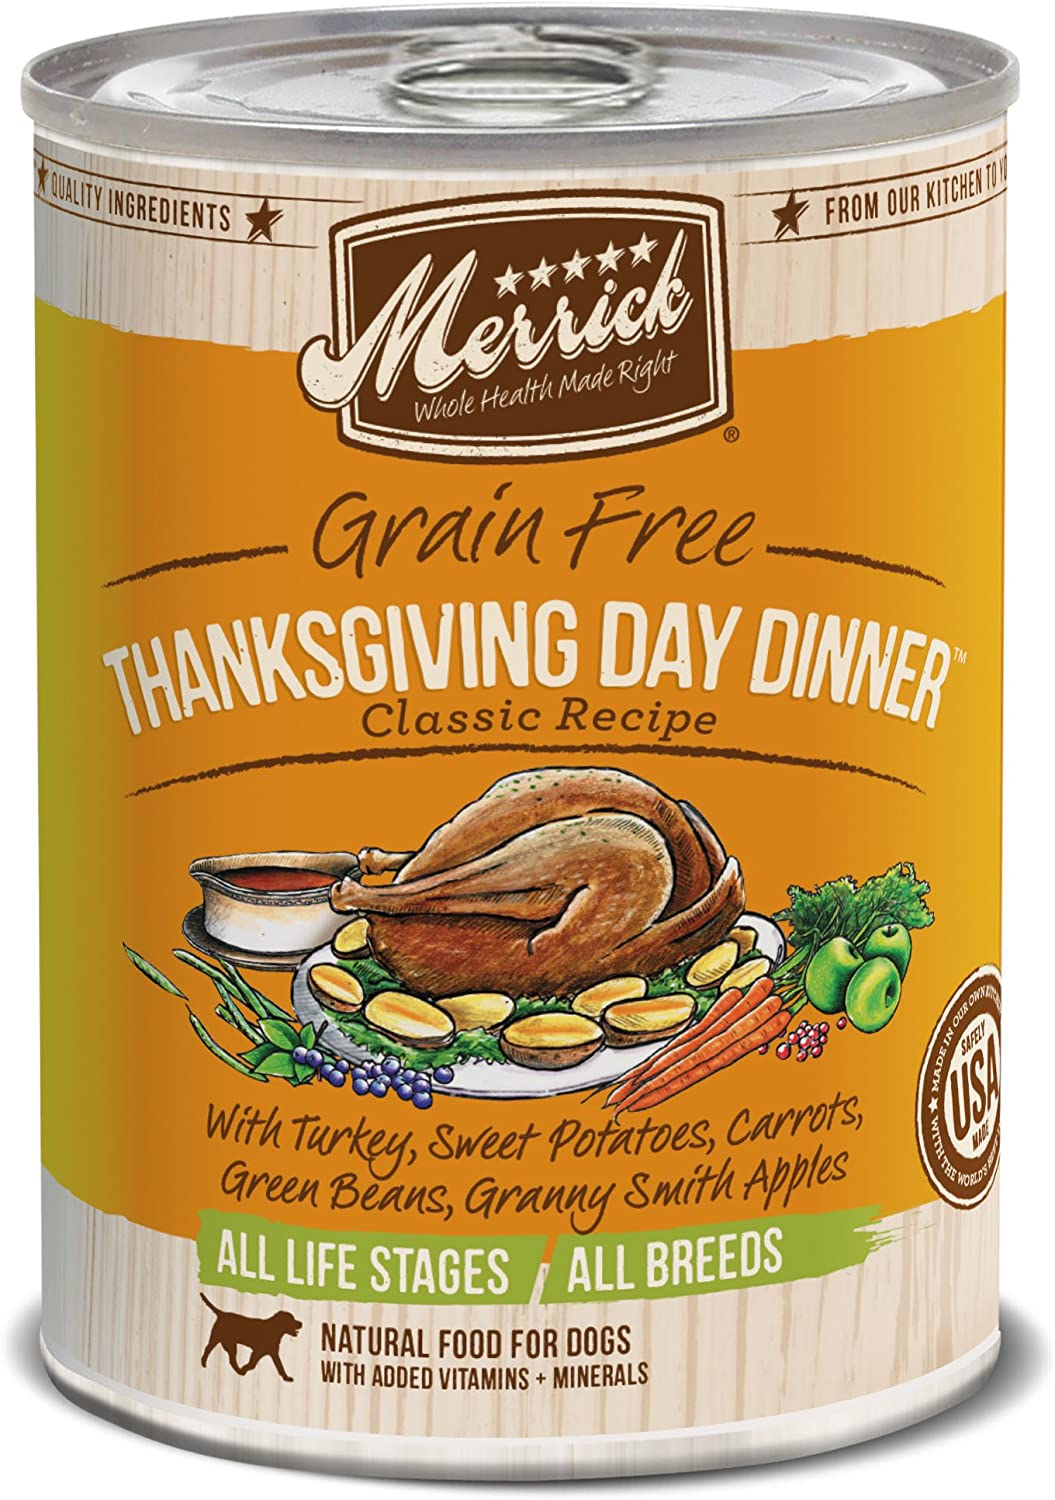 Merrick Classic Grain Free Canned Dog Food, 13,2 Oz, 12 Count Thanksgiving Day Dinner